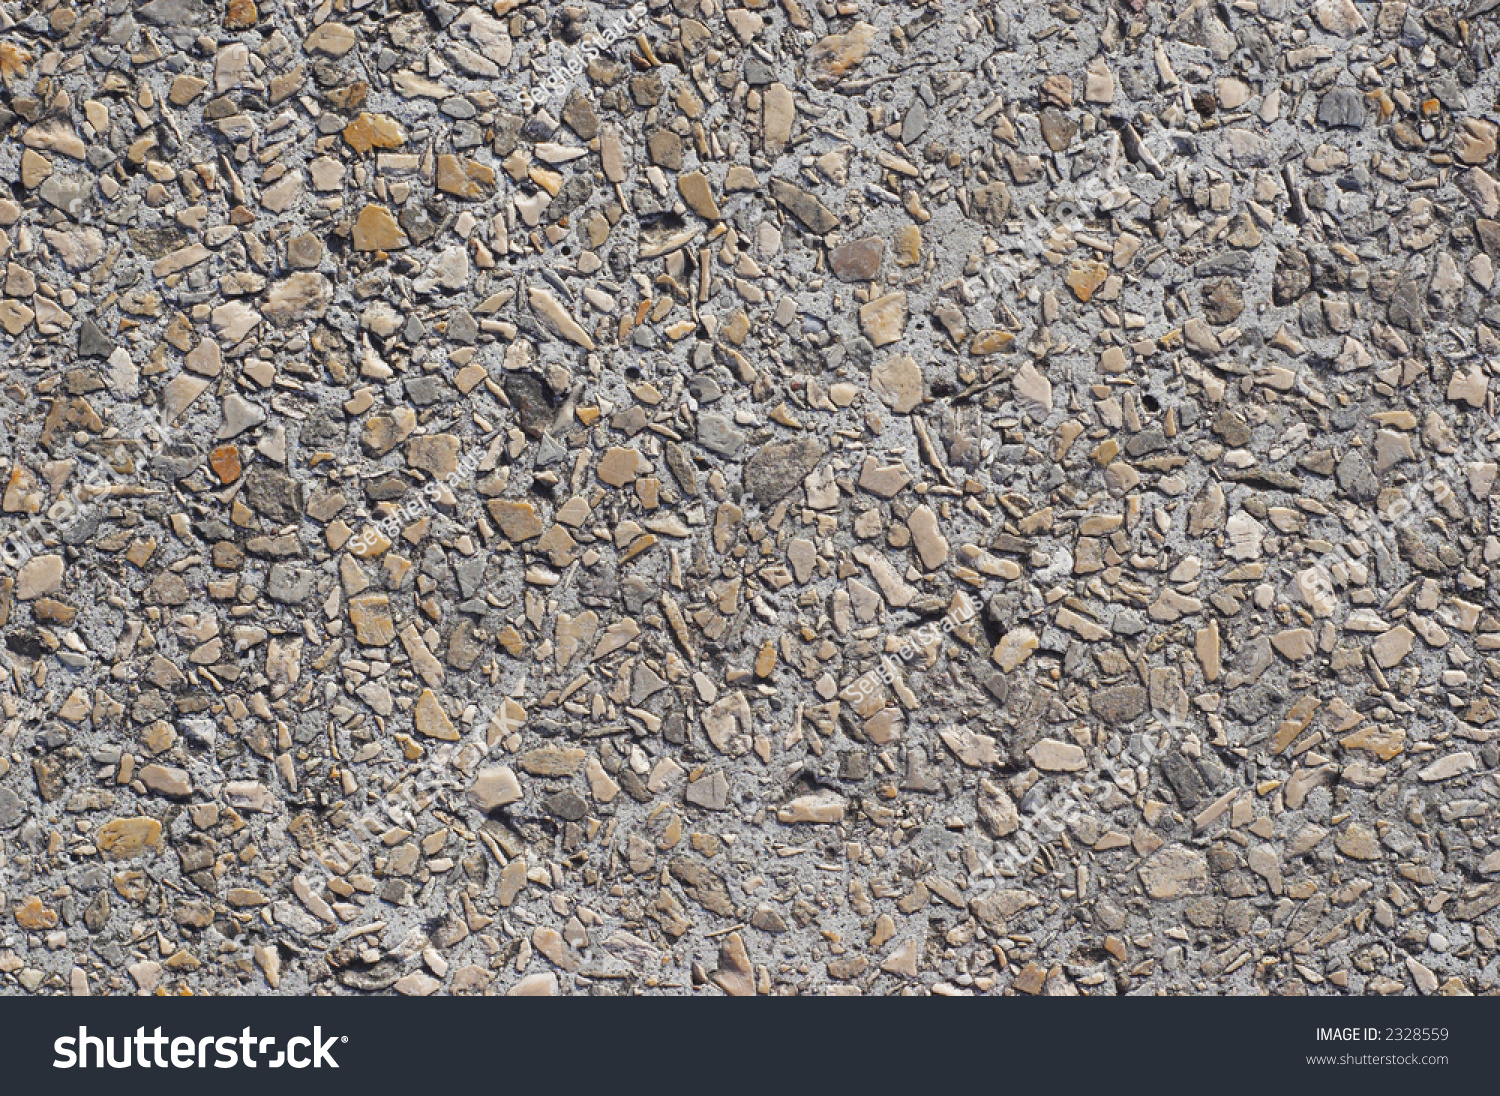 Texture Concrete Slab : Texture concrete slab armored by pebbles stock photo